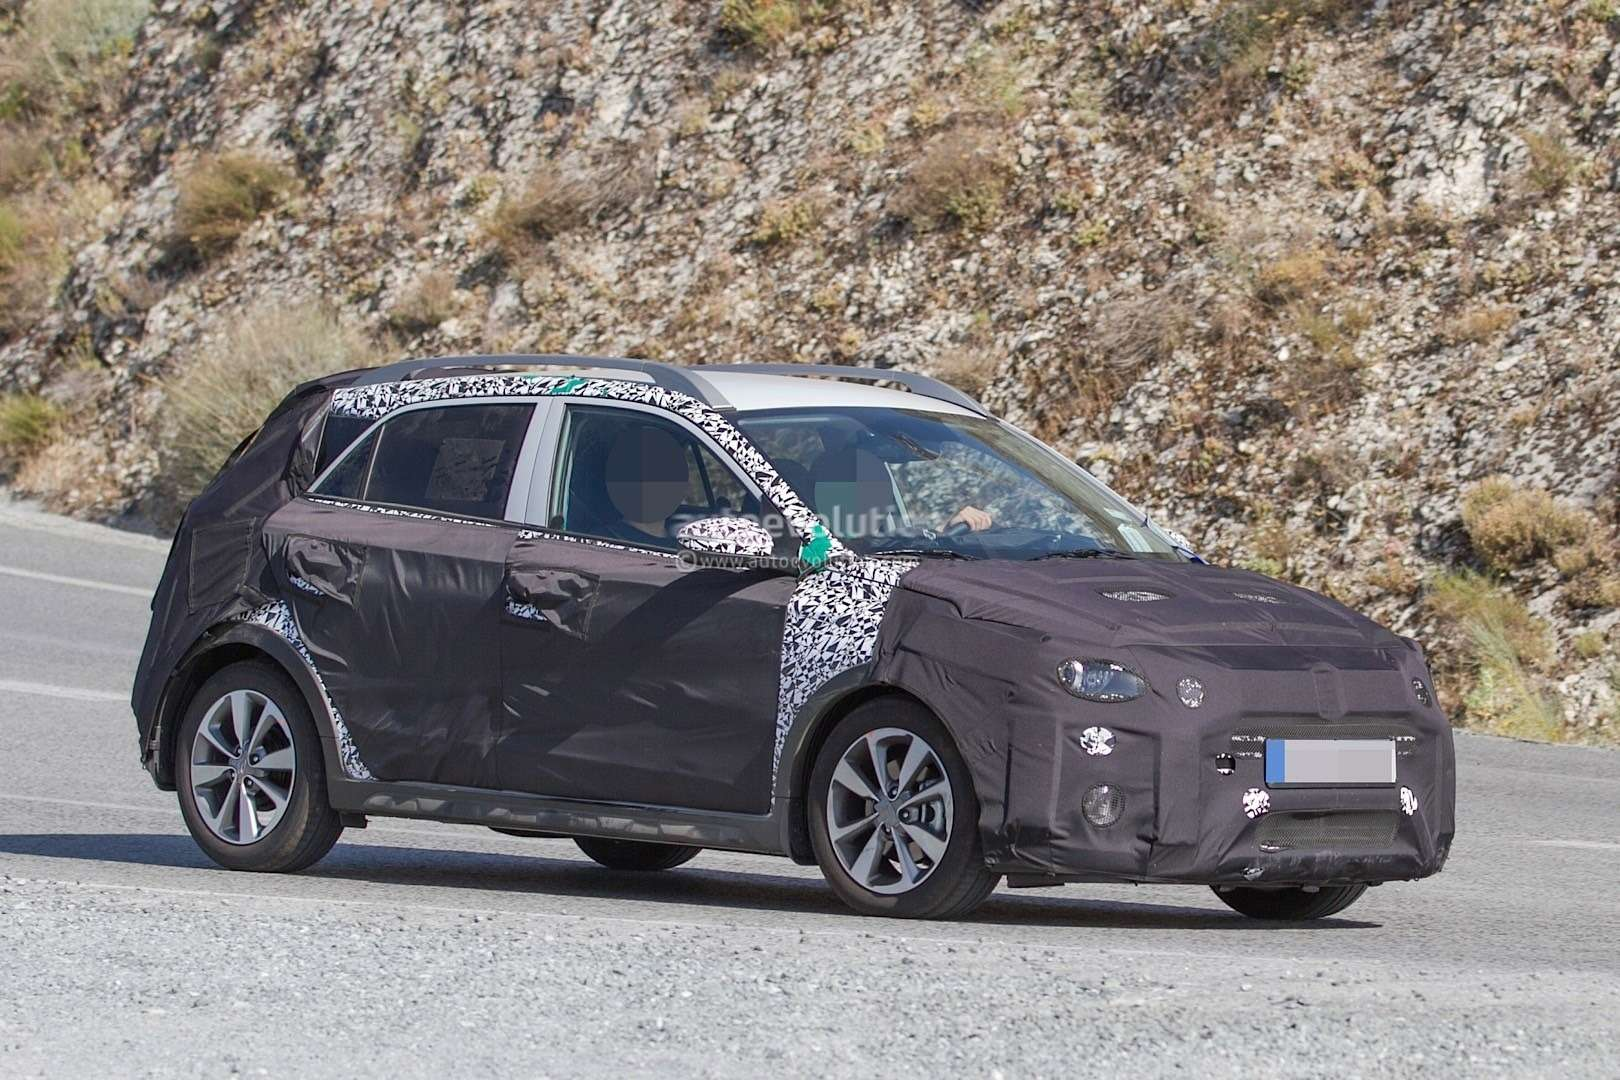 hyundai-i20-cross-test-mule-spotted-in-southern-europe-it-might-become-a-global-model-photo-gallery_3